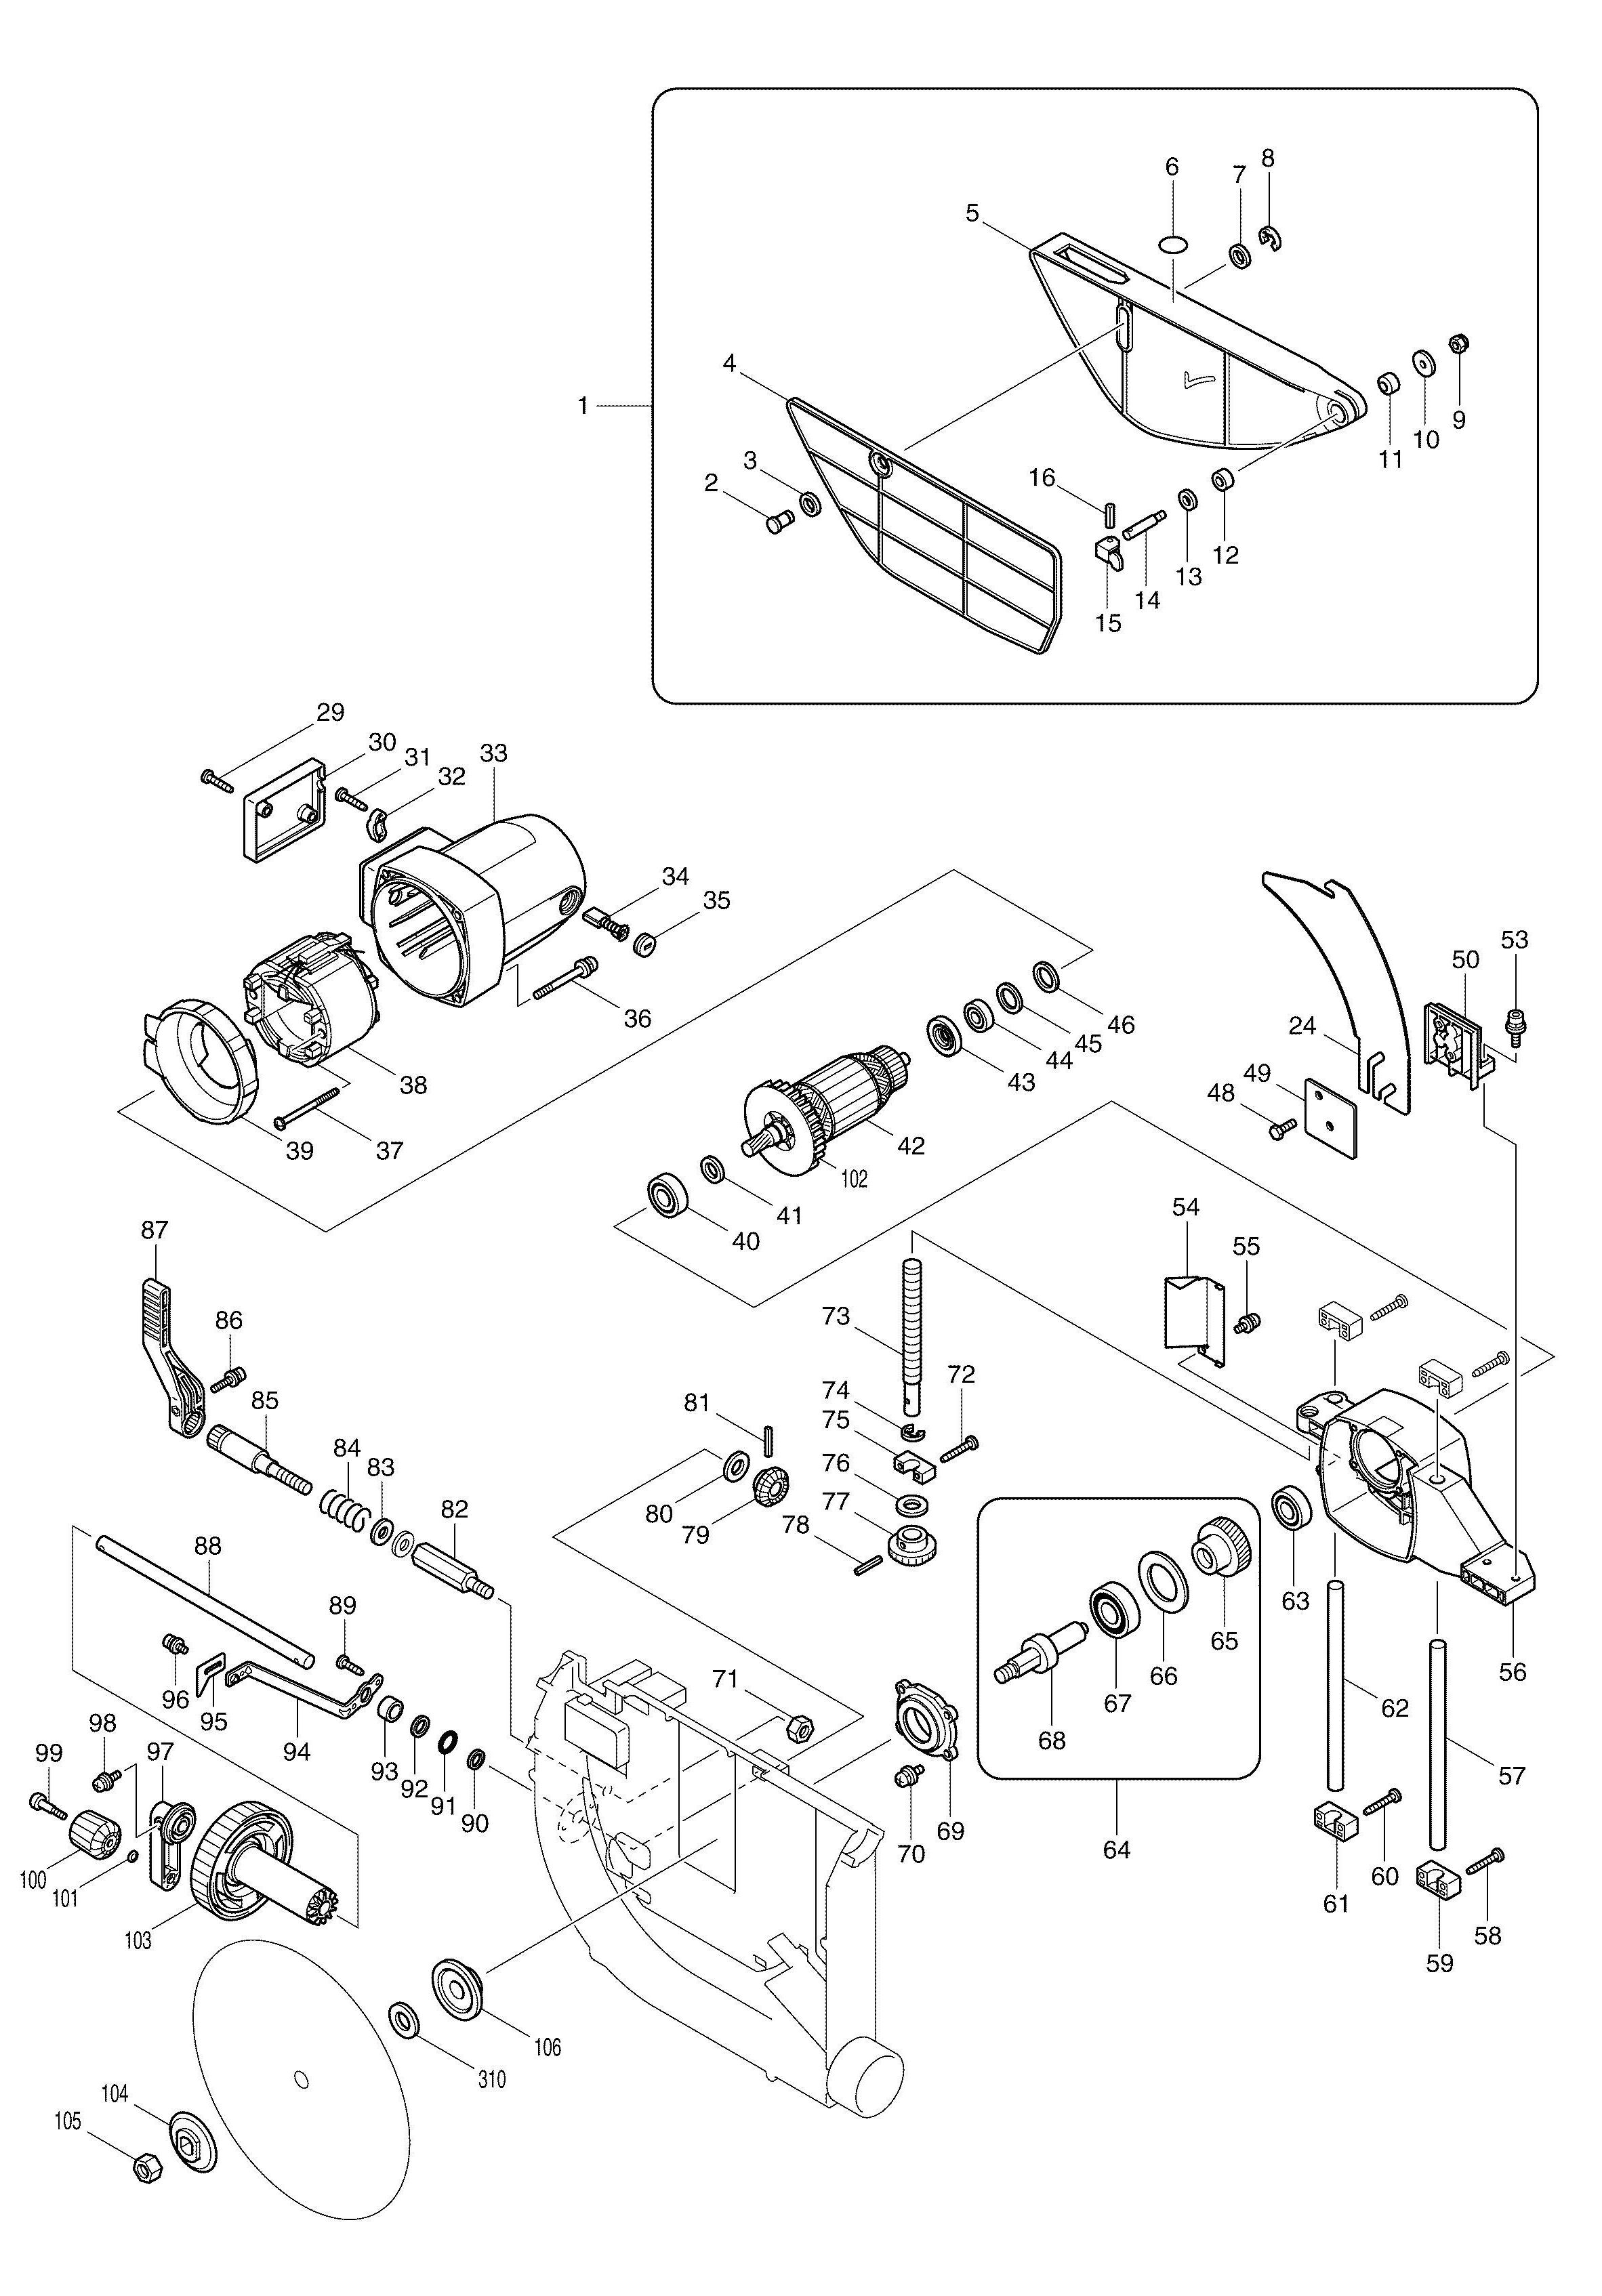 dw744 table saw wiring diagram best wiring librarymakita table saw wiring diagram auto electrical wiring diagram rh carwirringdiagram herokuapp com makita table saw